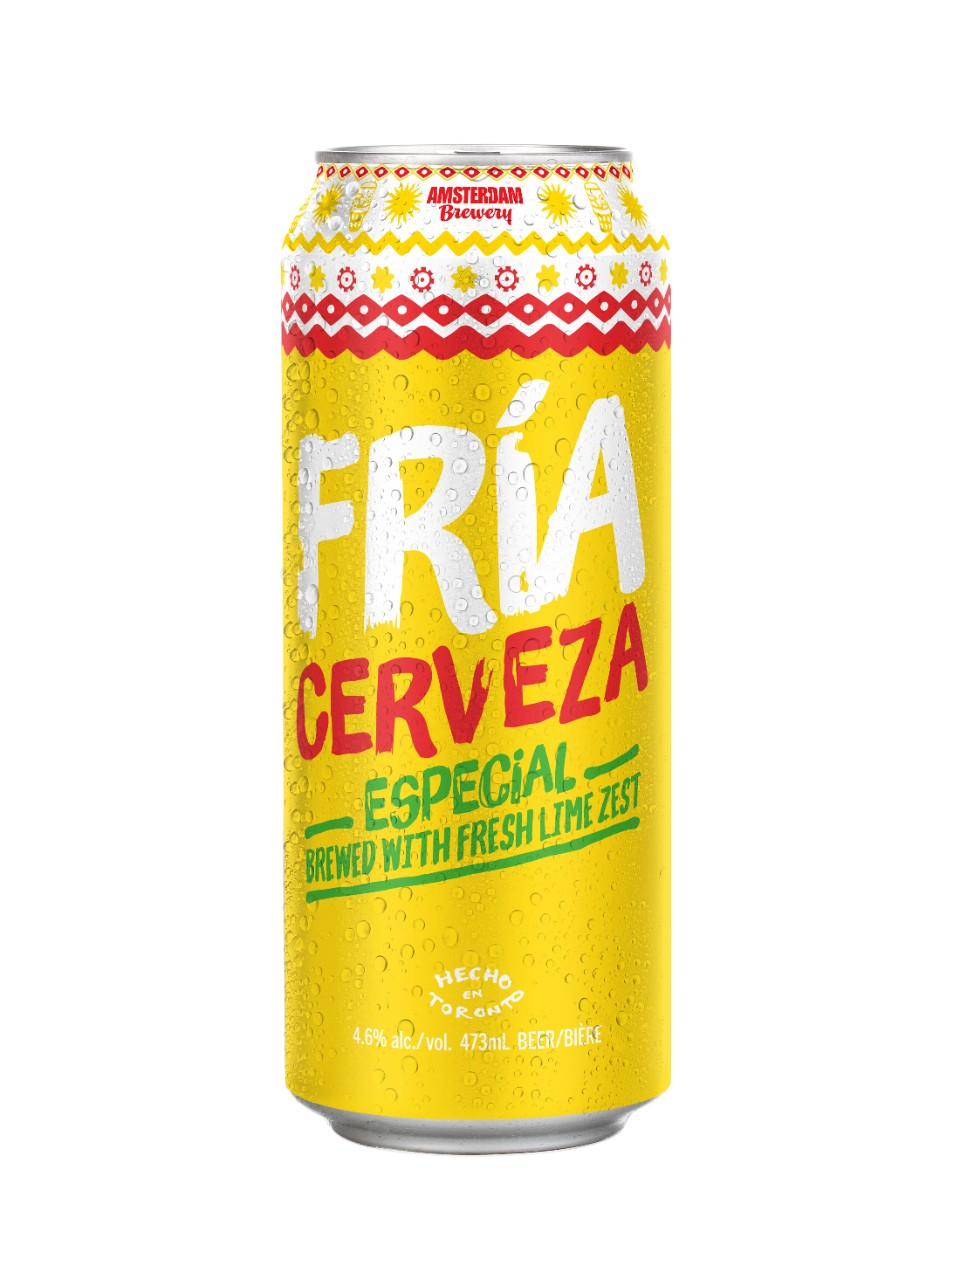 Image for Amsterdam Fria Cervesa from LCBO